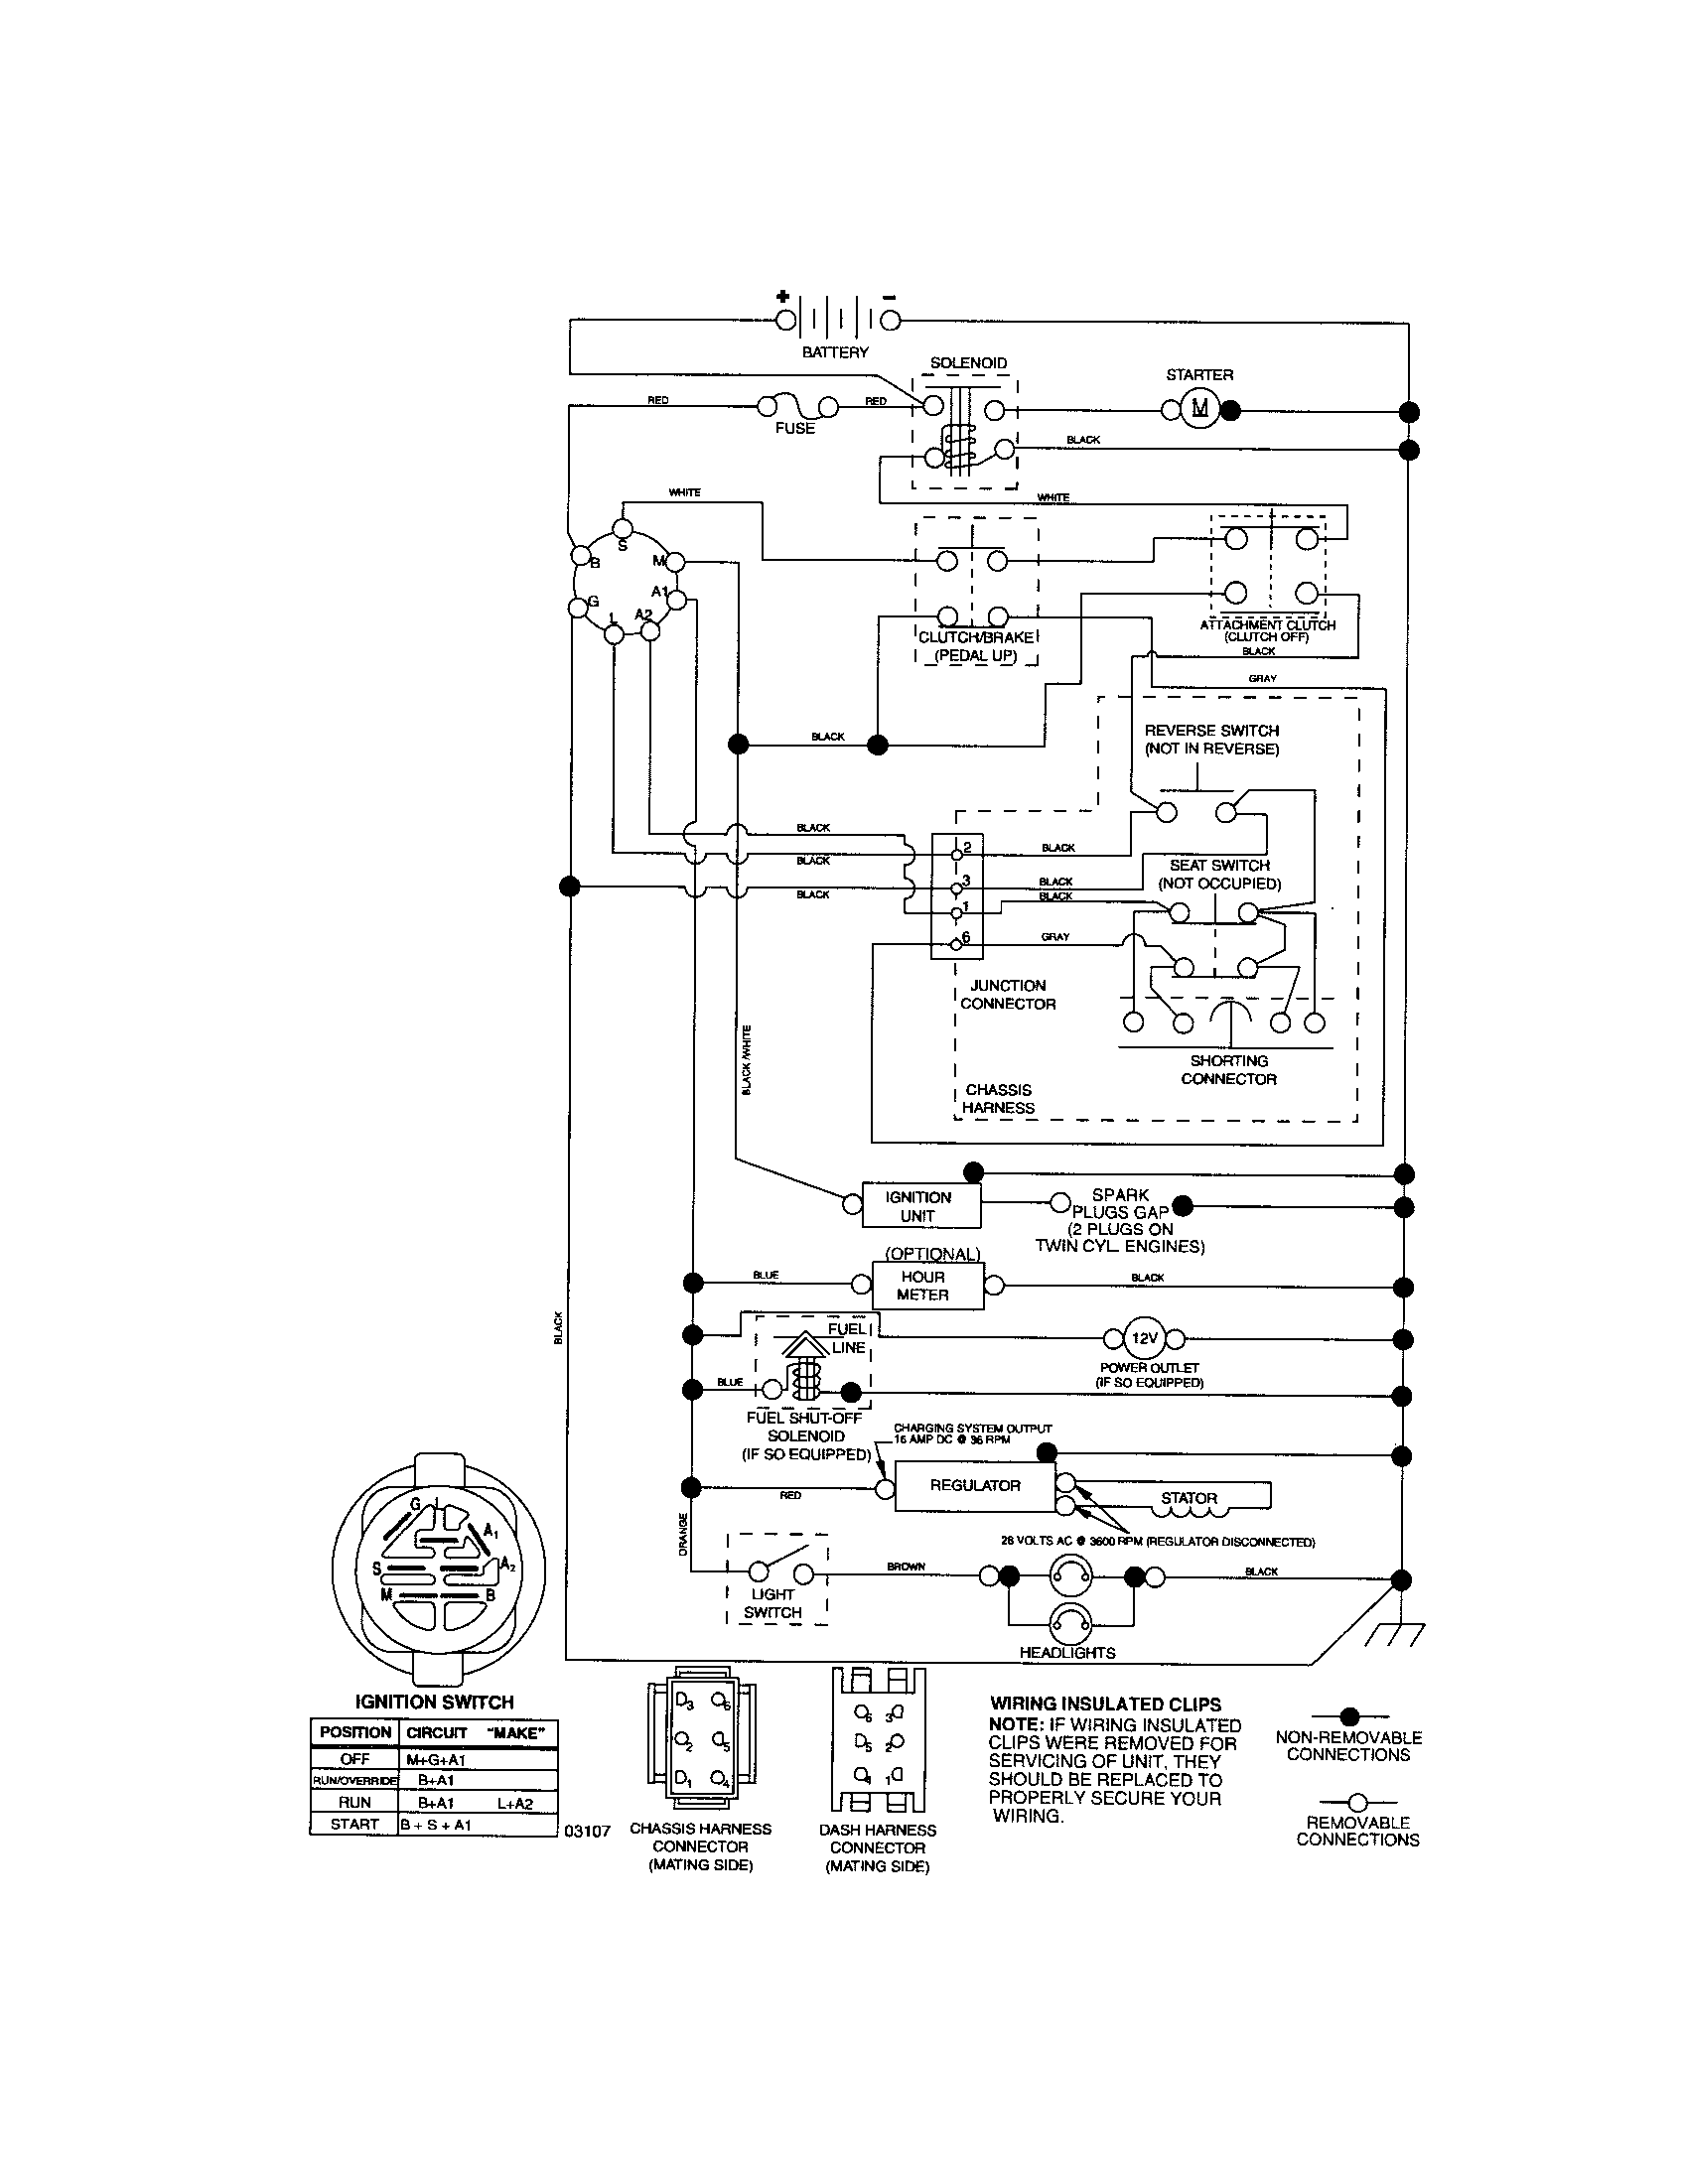 6af5f1447fd13c8443376822ddc1e105 craftsman riding mower electrical diagram wiring diagram  at gsmportal.co